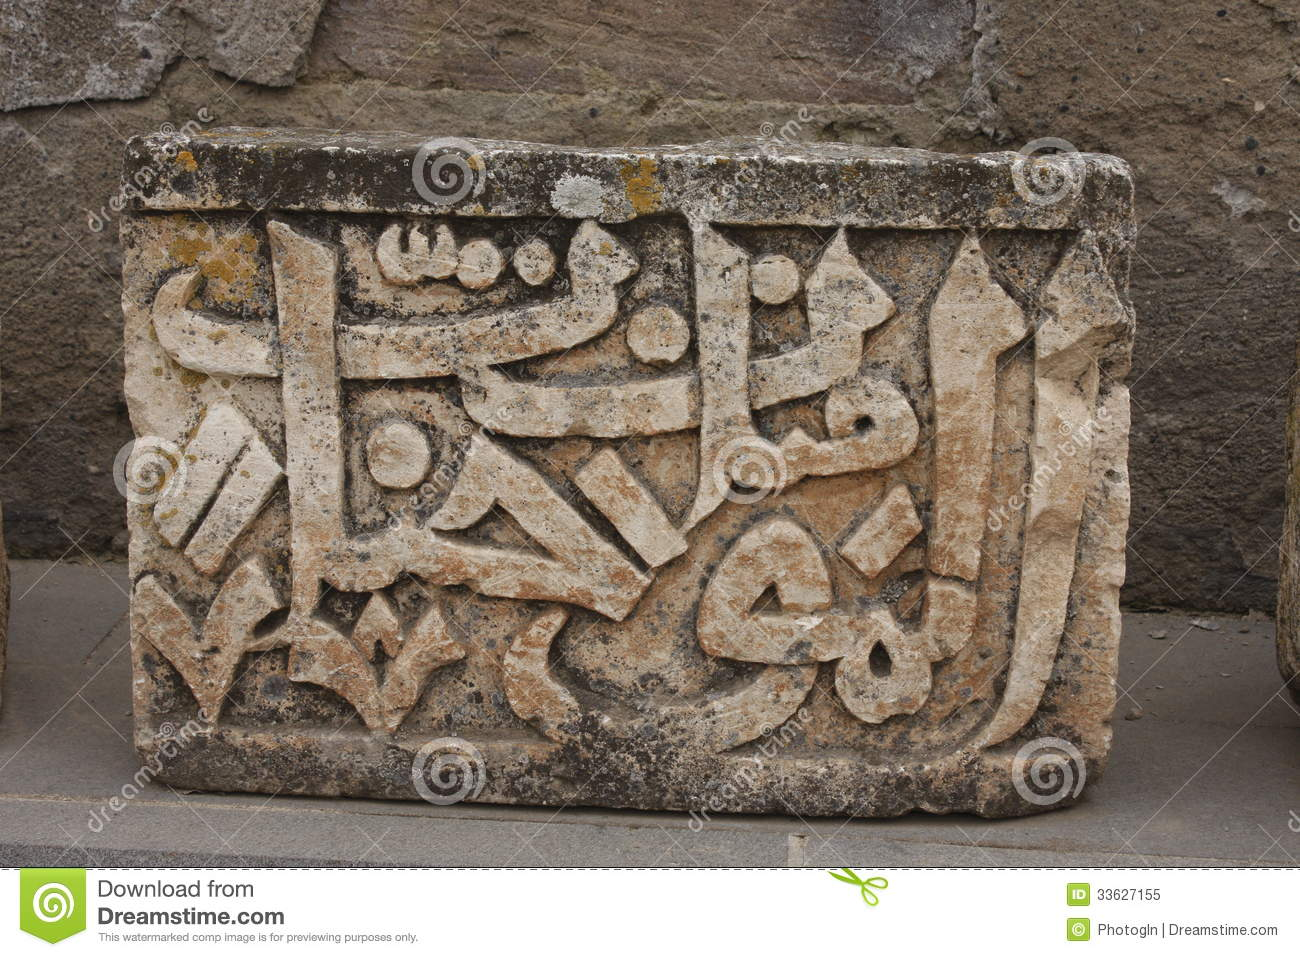 Door in Arabic is باب - bab. What do you think my door would be?